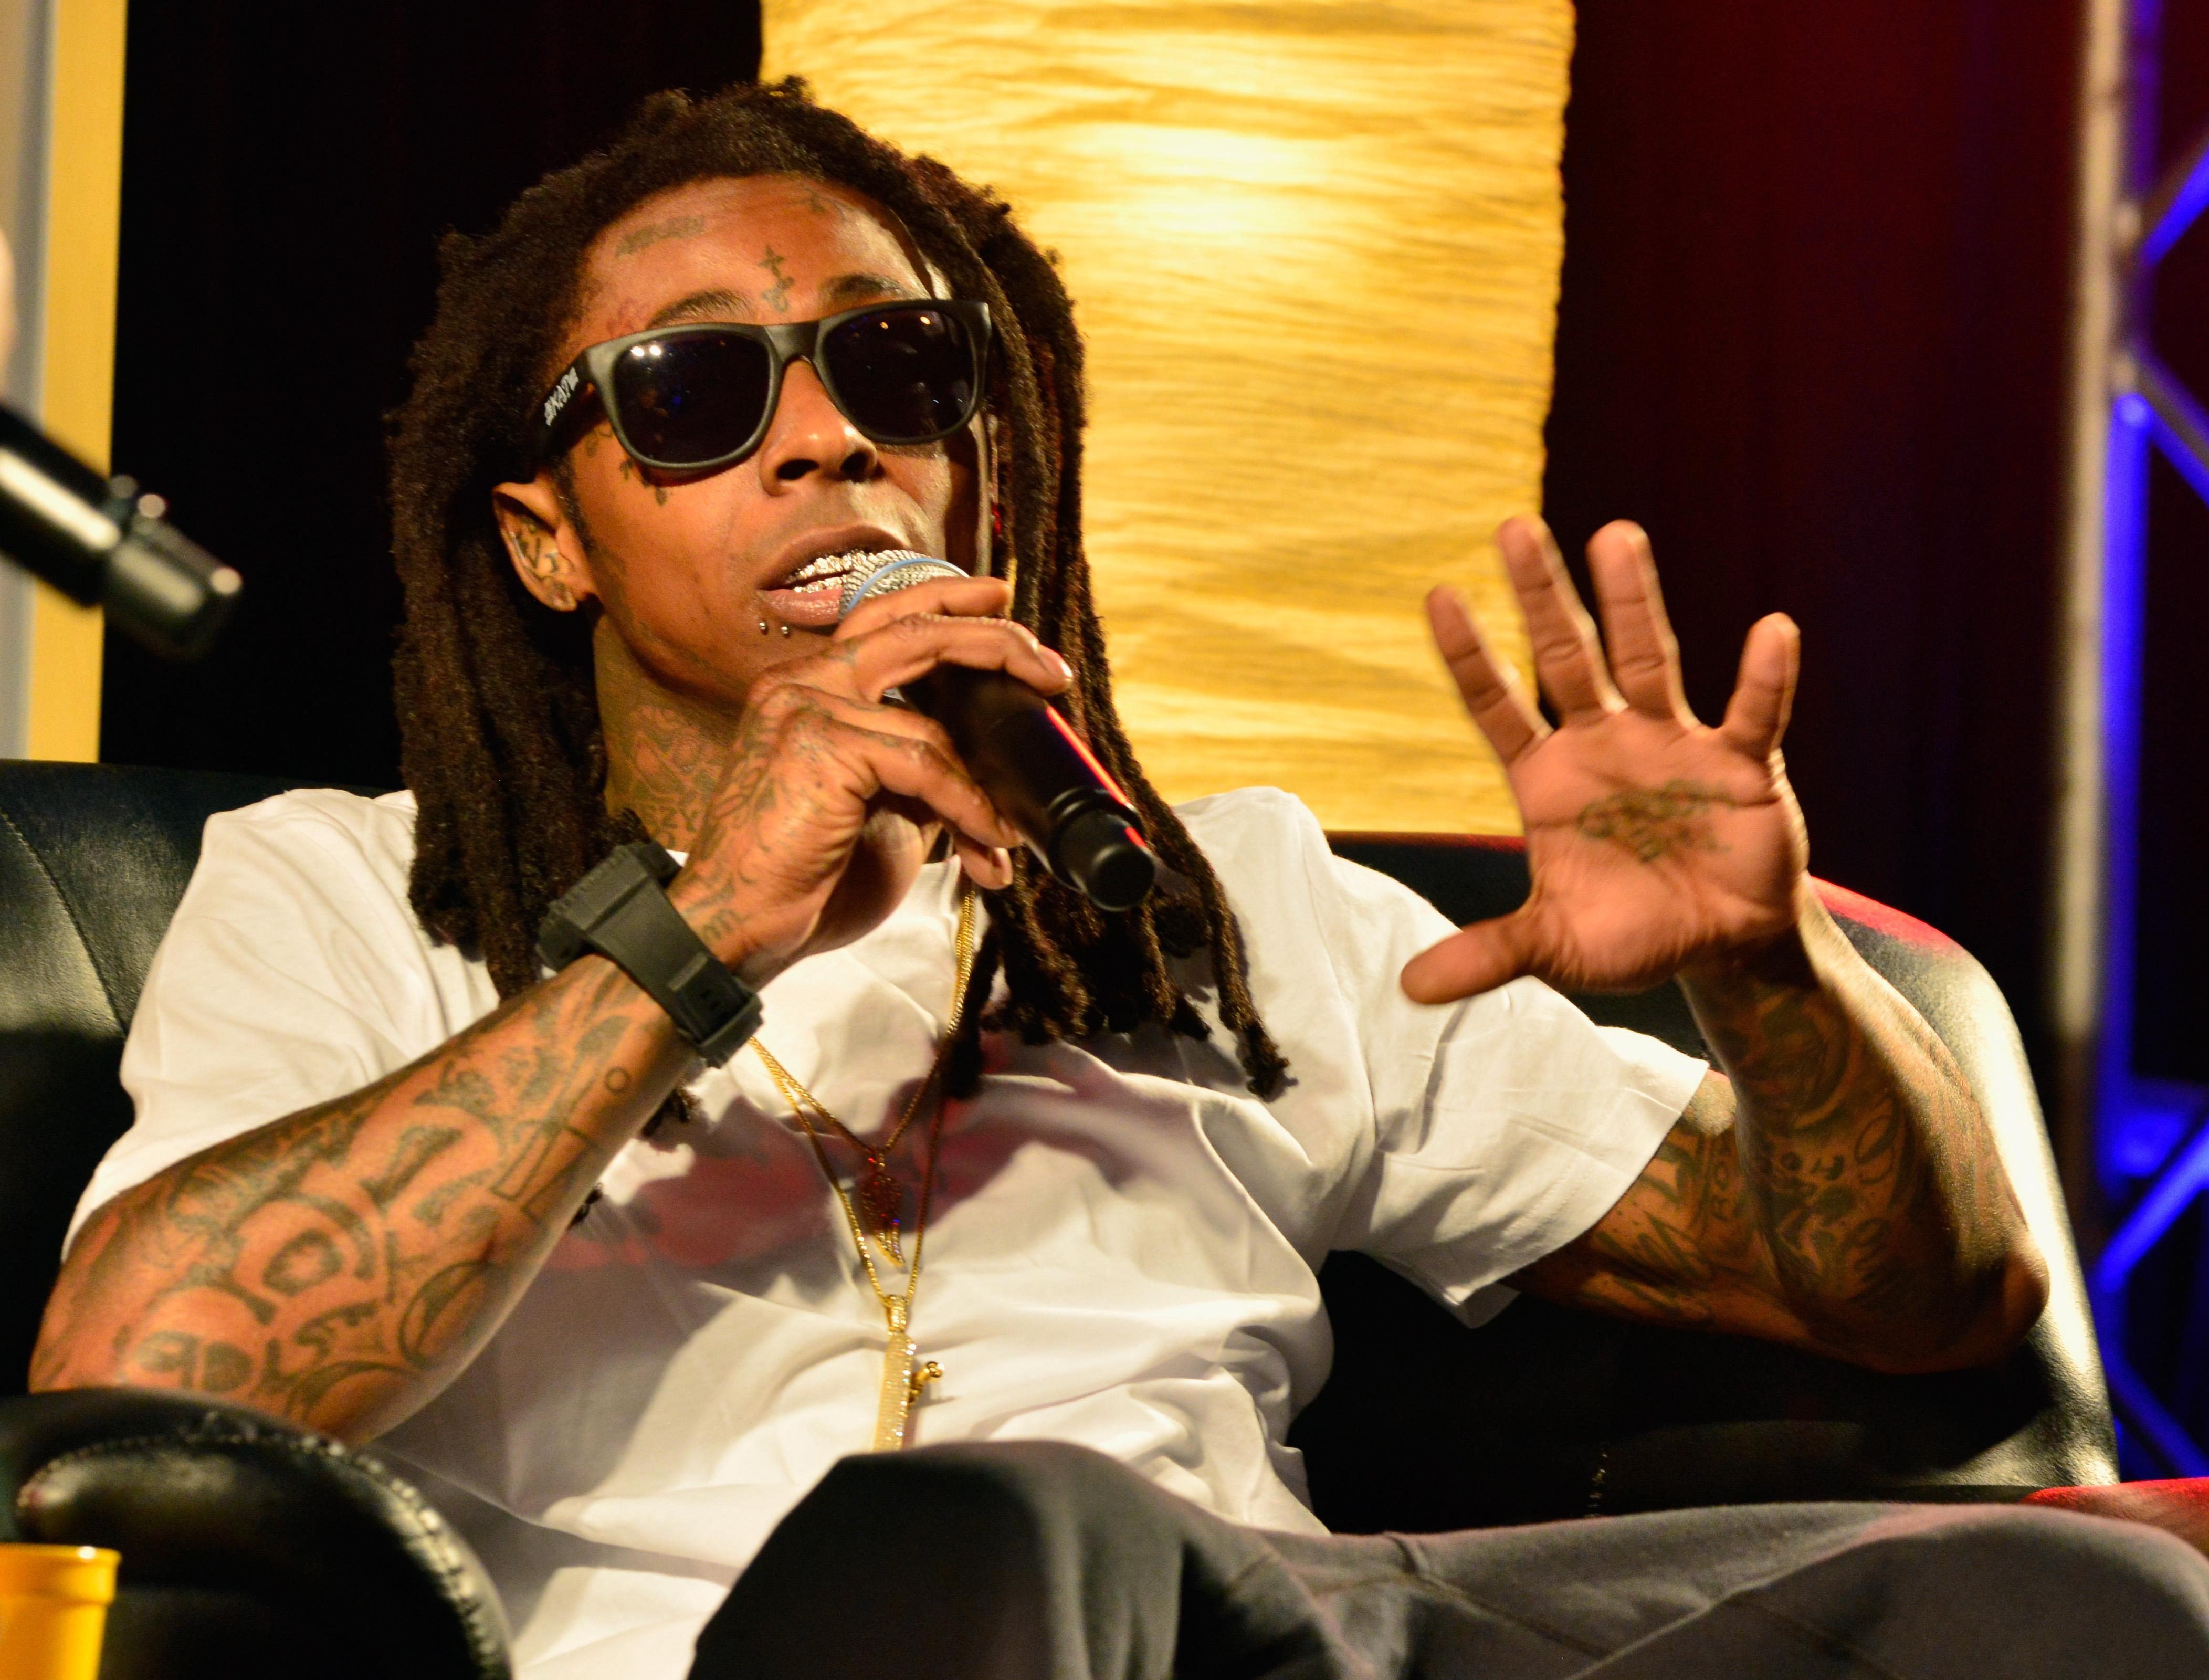 Lil Wayne Finally Releases 'Tha Carter V' Album